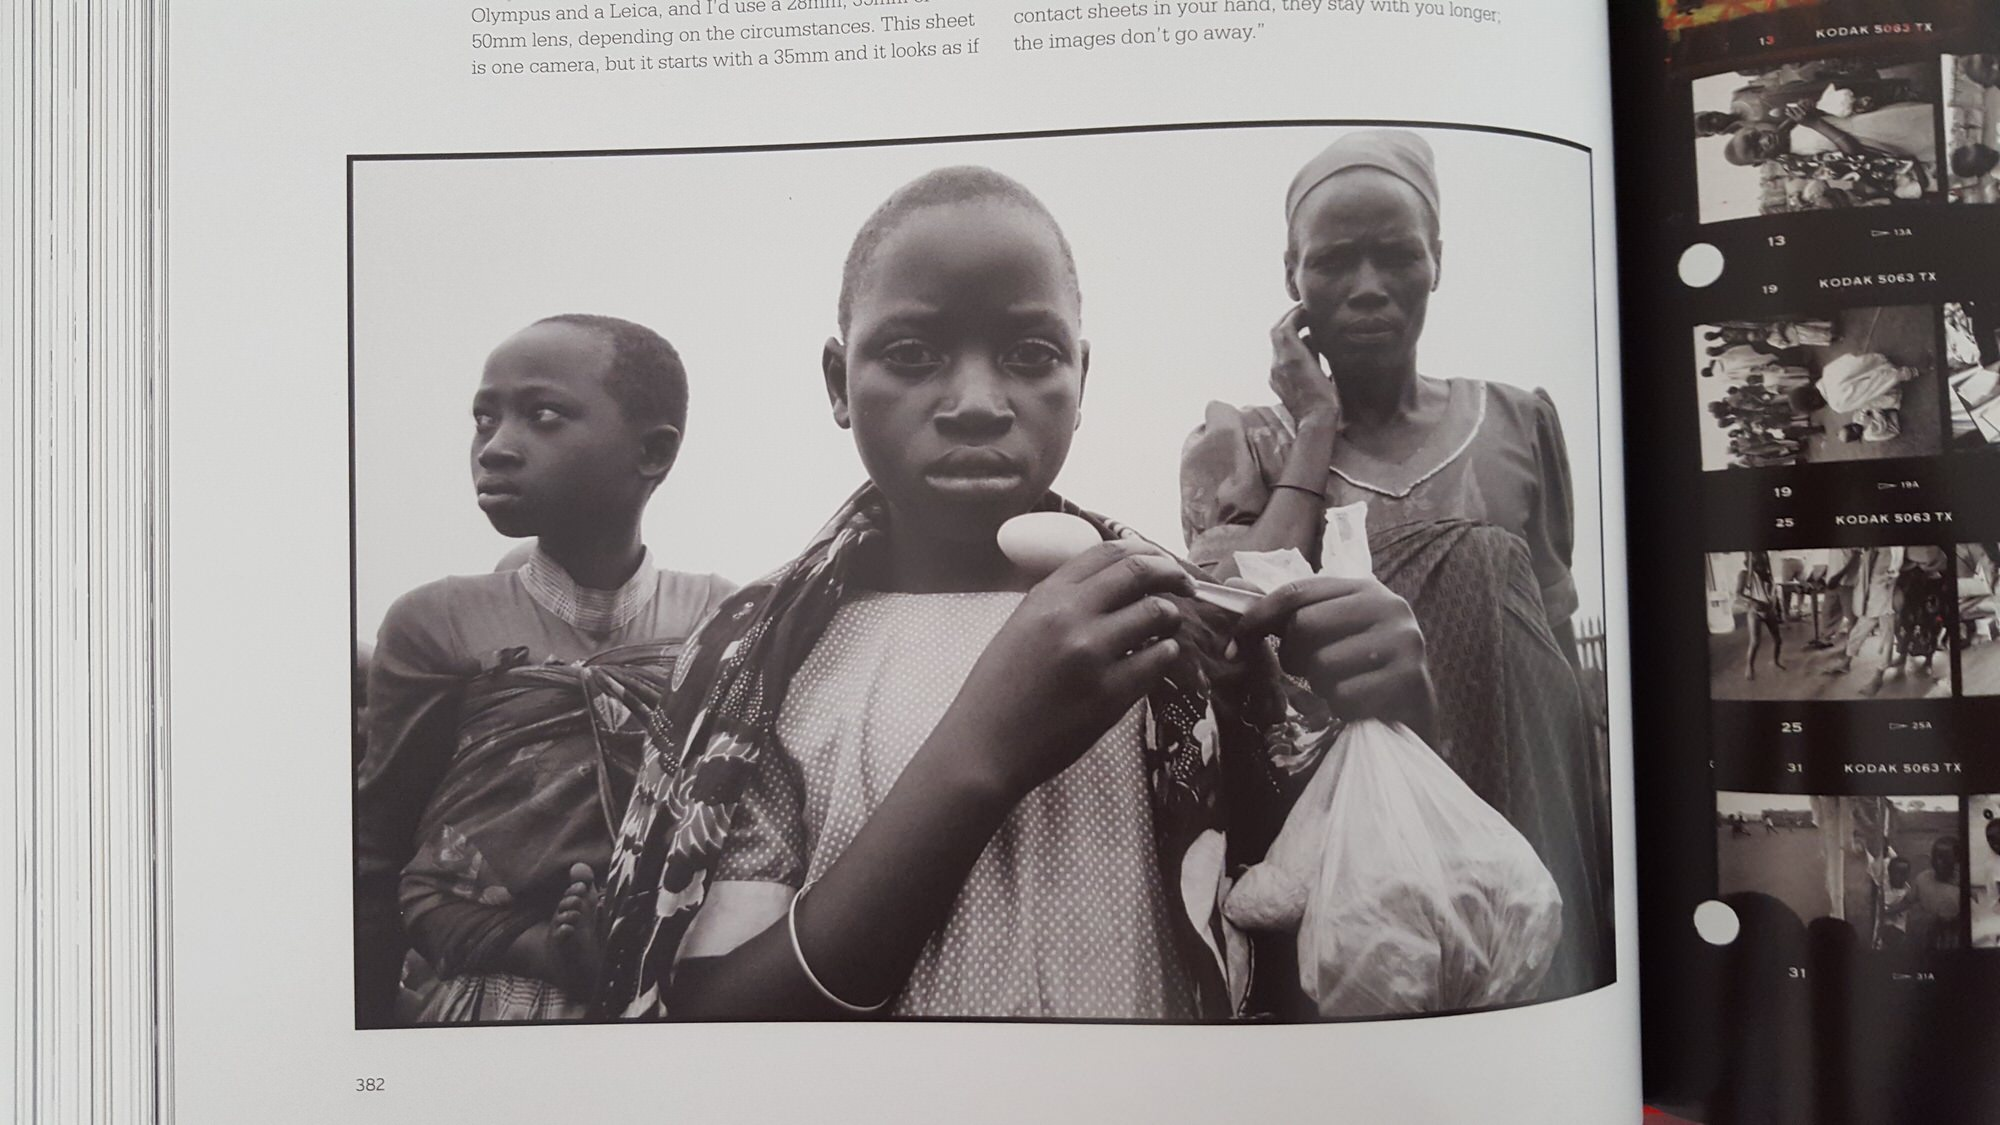 eli reed contact sheets - kids in africa2